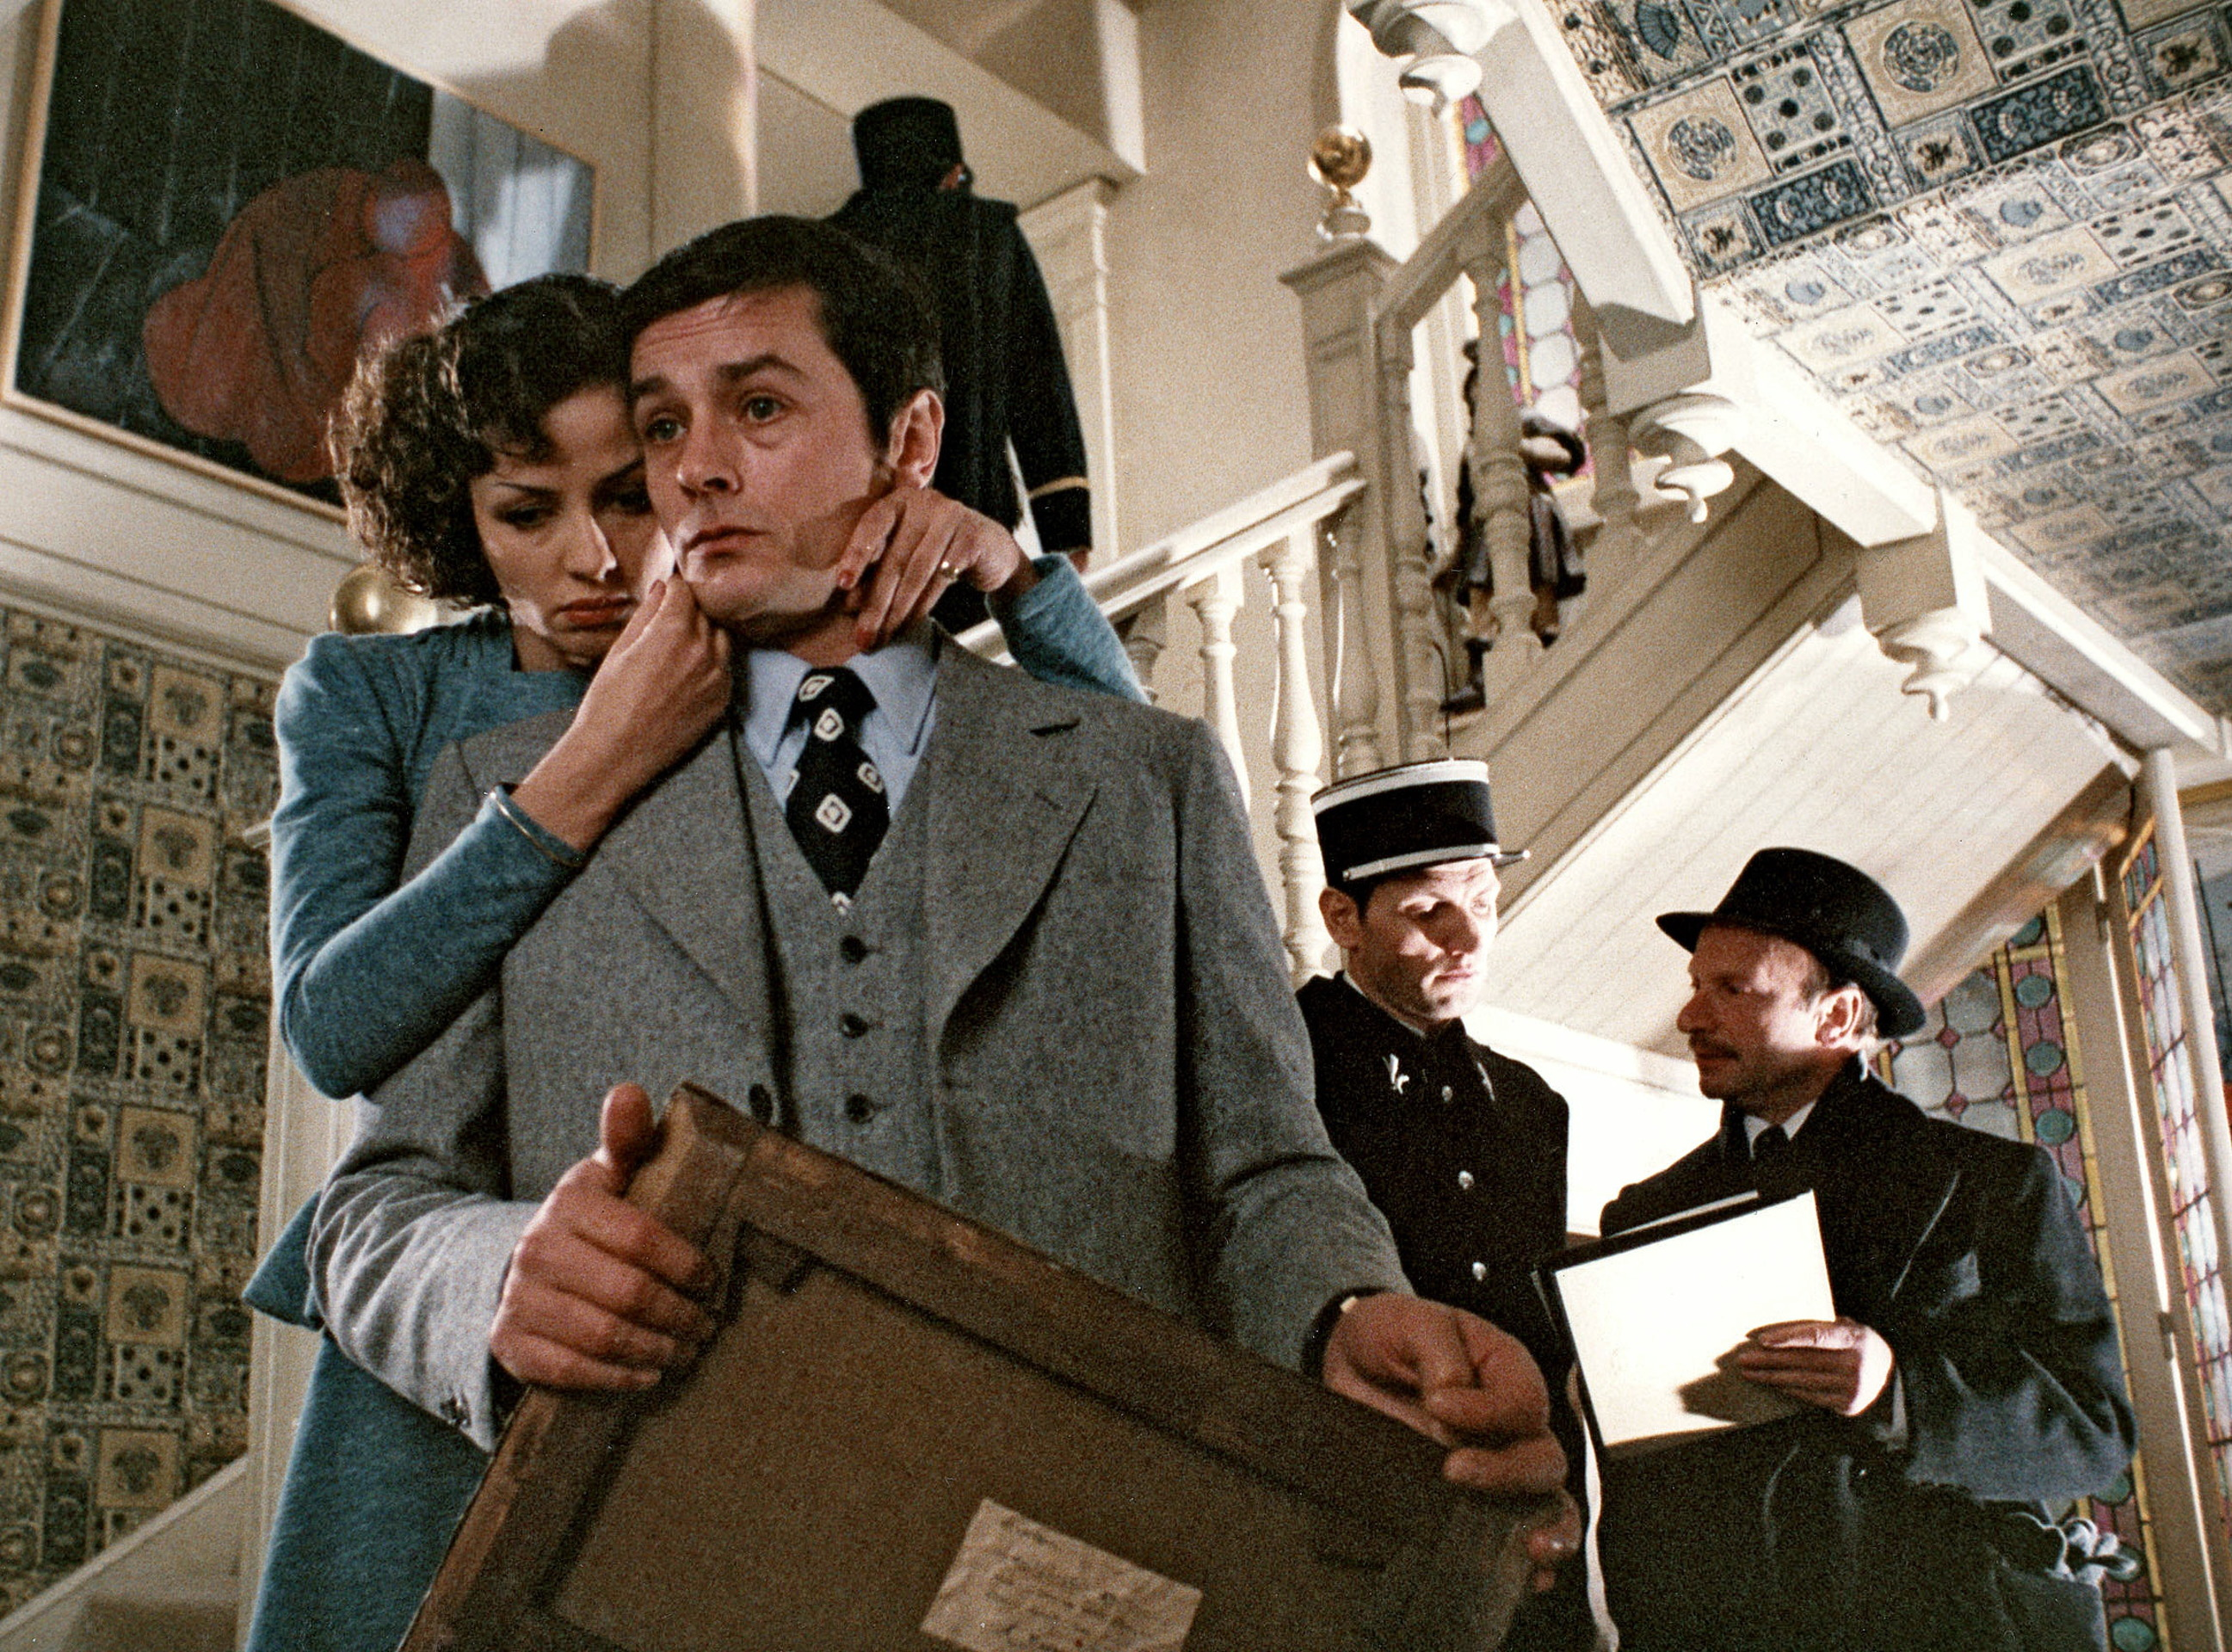 Monsieur Klein - Alain Delon and Juliet Berto